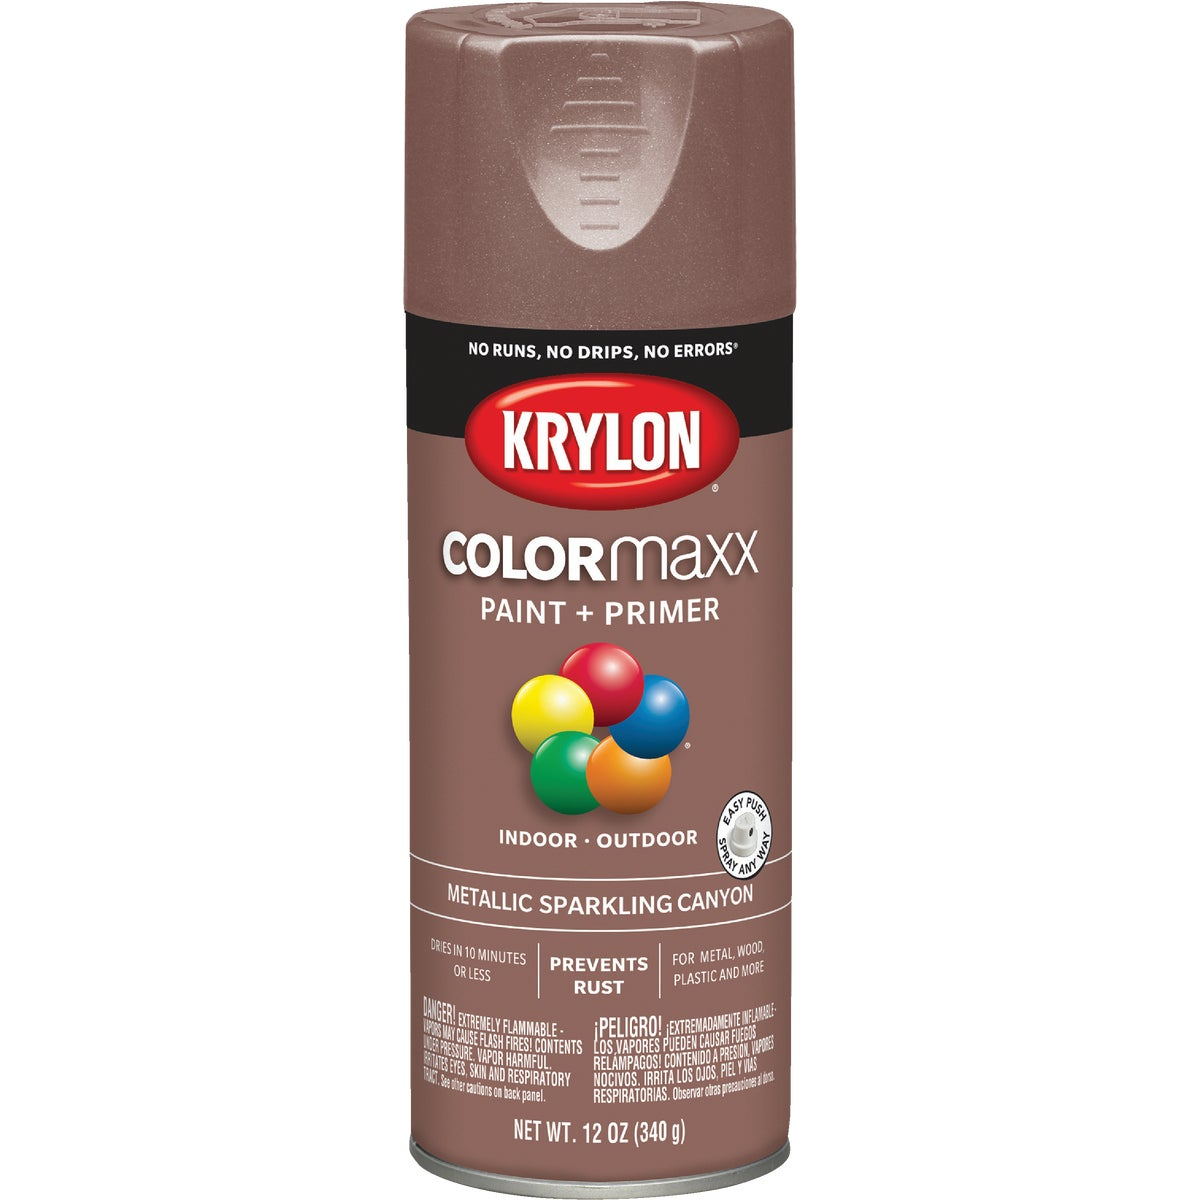 SPARKLNG CAN SPRAY PAINT - 51252 by Krylon/consumer Div